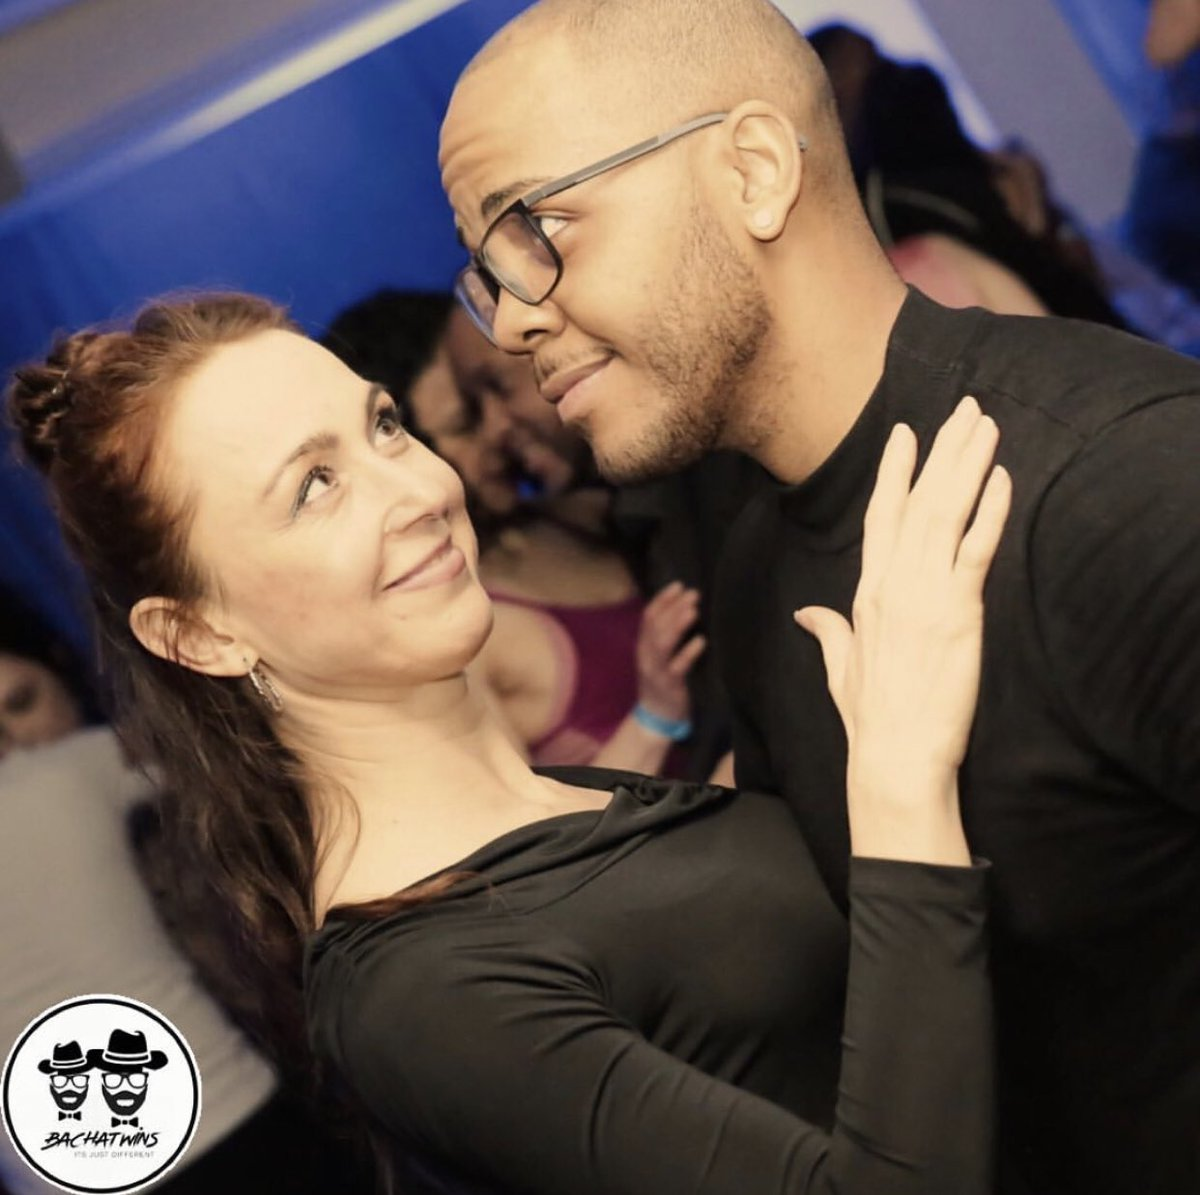 Thanking God For The Opportunity To Dance Once Again. Be Grateful & Happy In Doing Things We Love.Photo Credit @latinparty_com Location @copacabananyc Event @latinparty_com#Bachatwins #ThrowbackThursday #Thankful #TuesdayMorning  #Bachatwins #DanceBachata #Bachata #Bachata